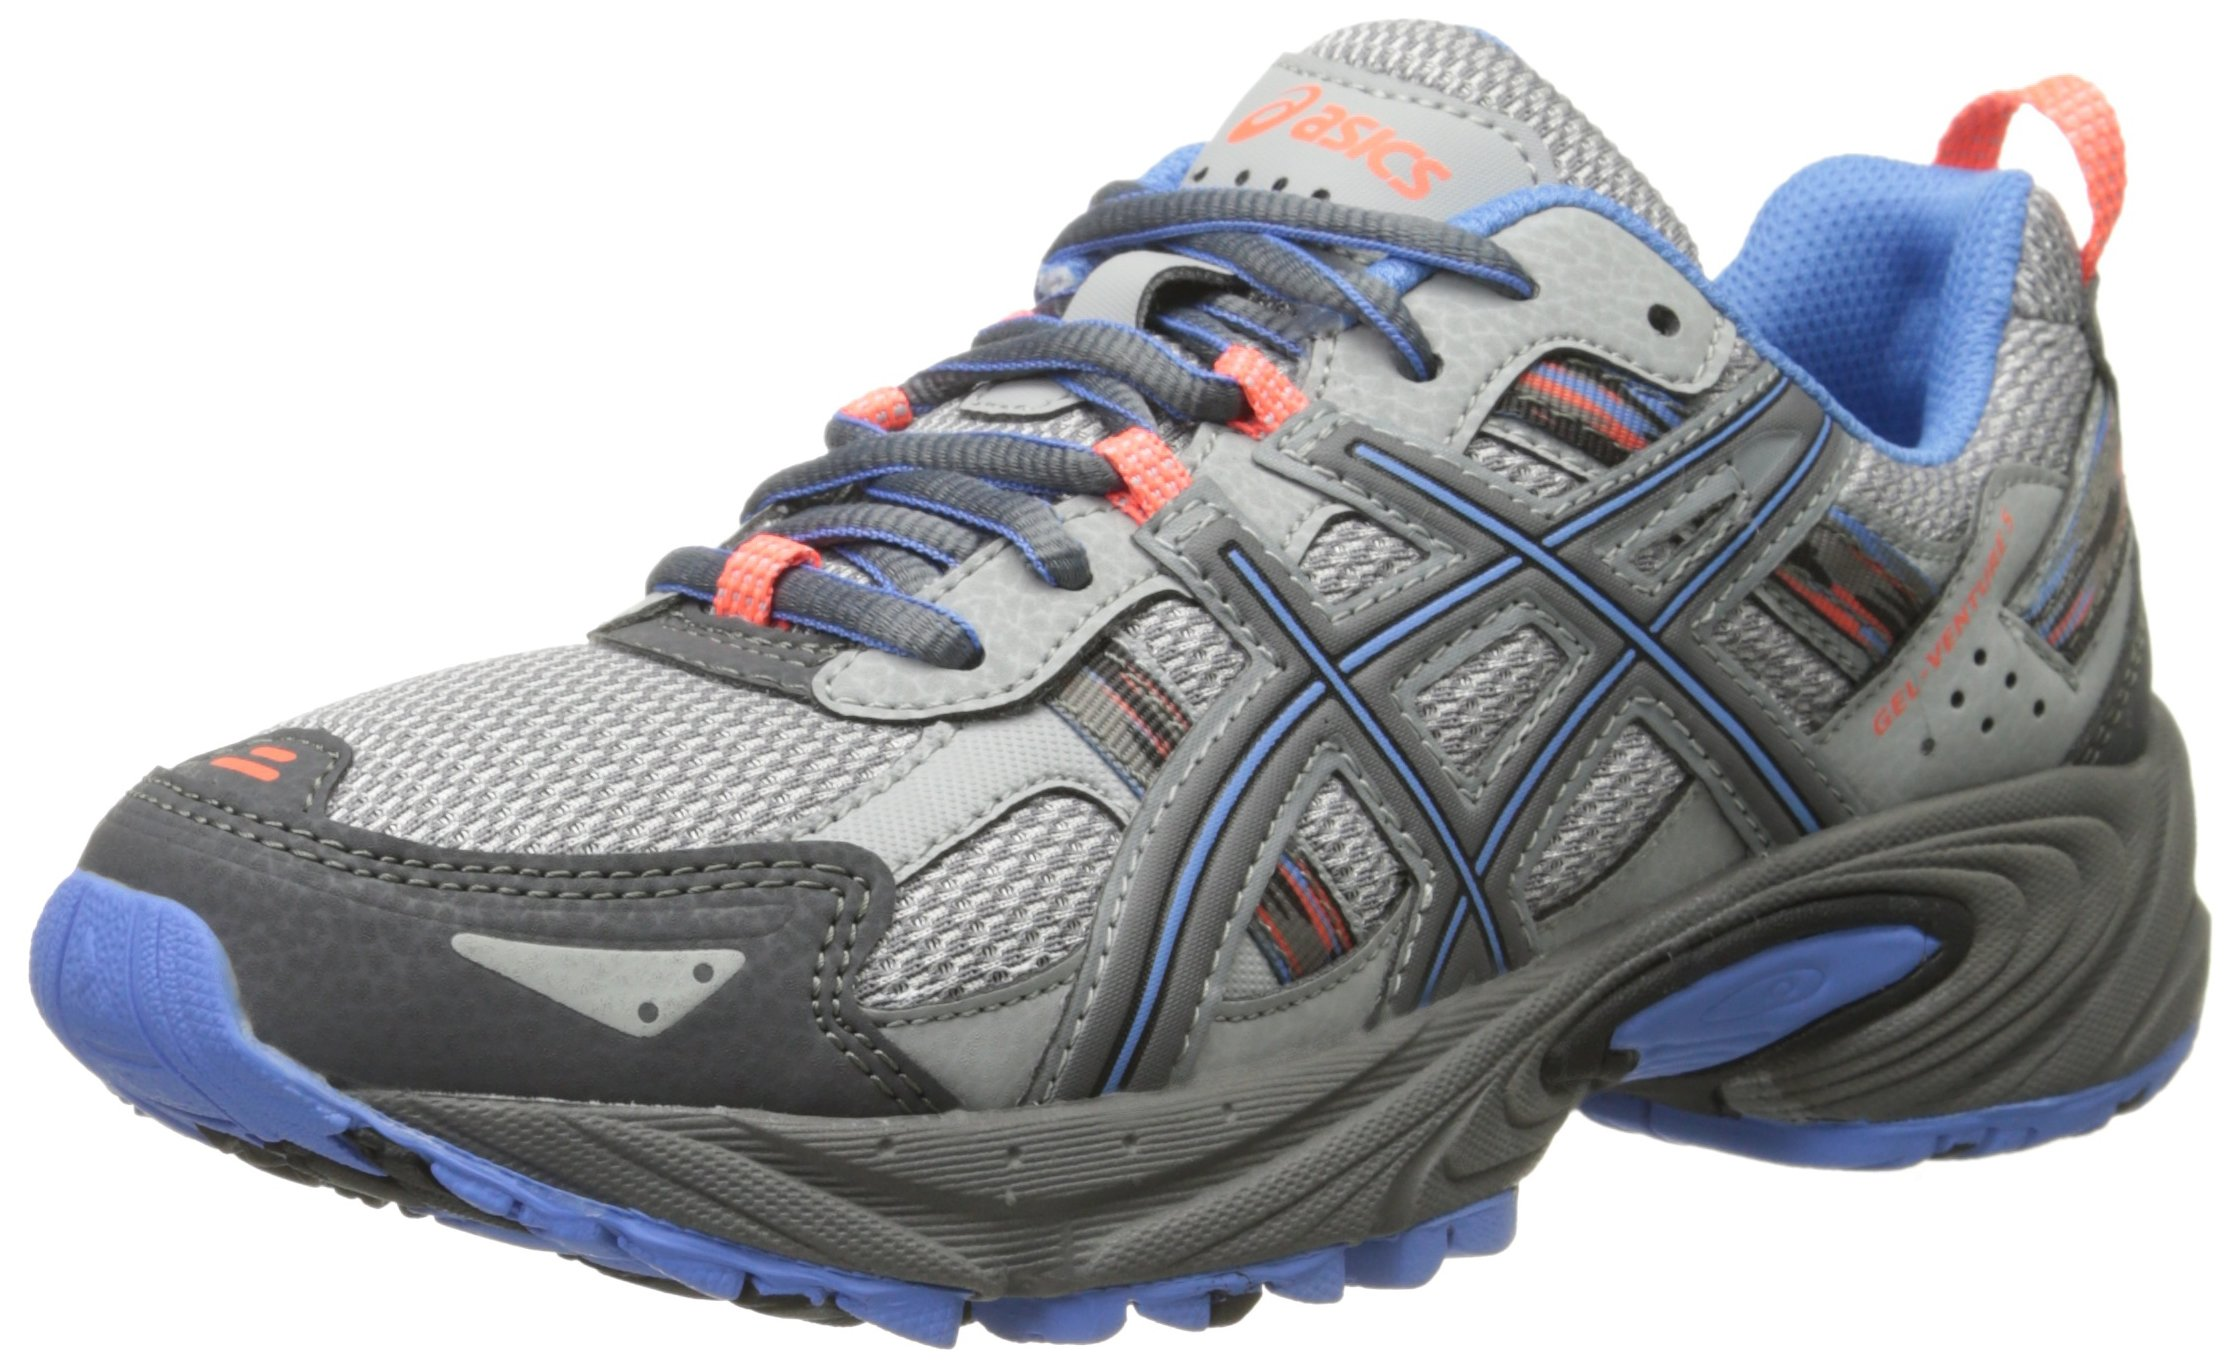 ASICS Women's Gel-Venture 5-W Silver Grey/Carbon/Dutch Blue 6 M US